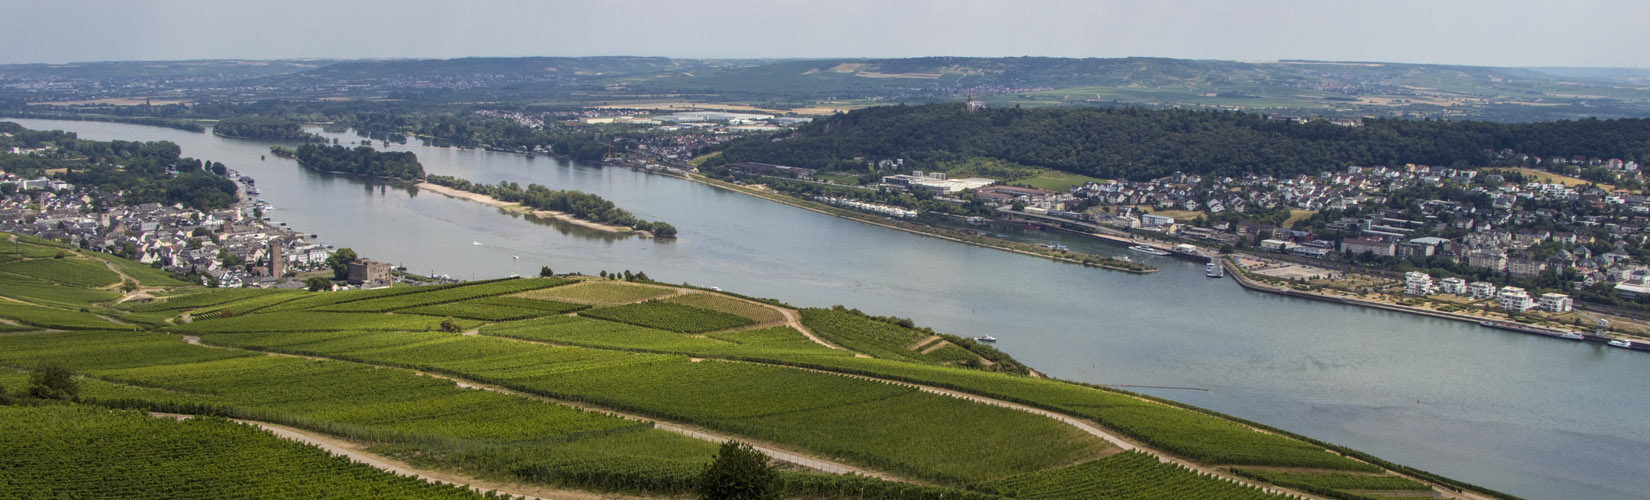 Rüdesheim Ring Ticket Tour - A Must-Do When Exploring the Rhine :: I've Been Bit! A Travel Blog